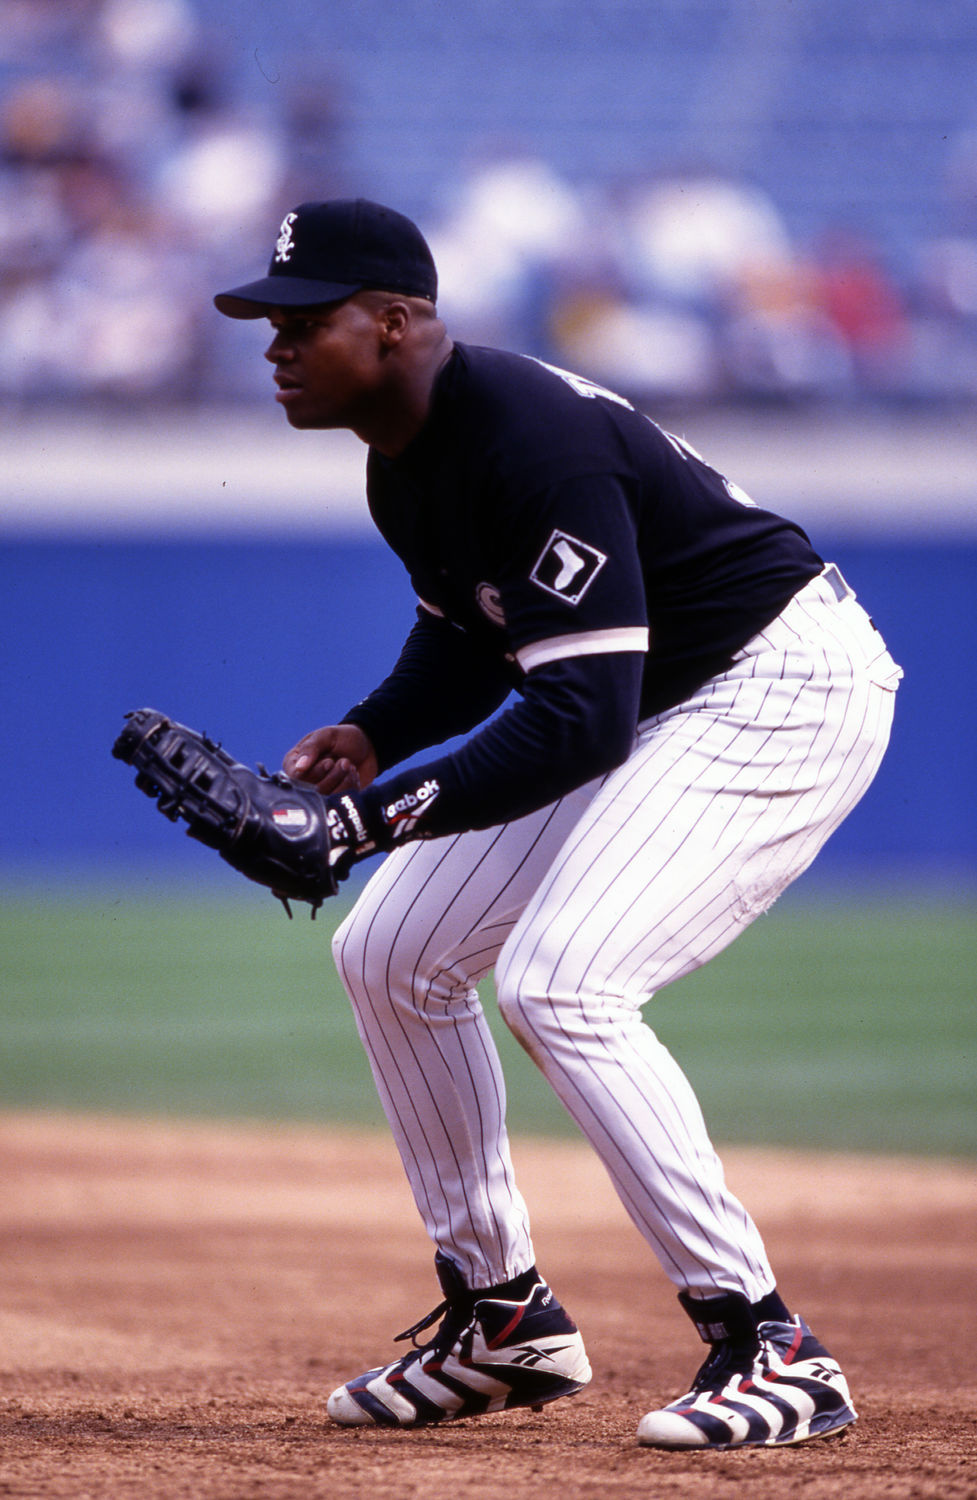 Vintage Frank Thomas returns after signing with Athletics ...